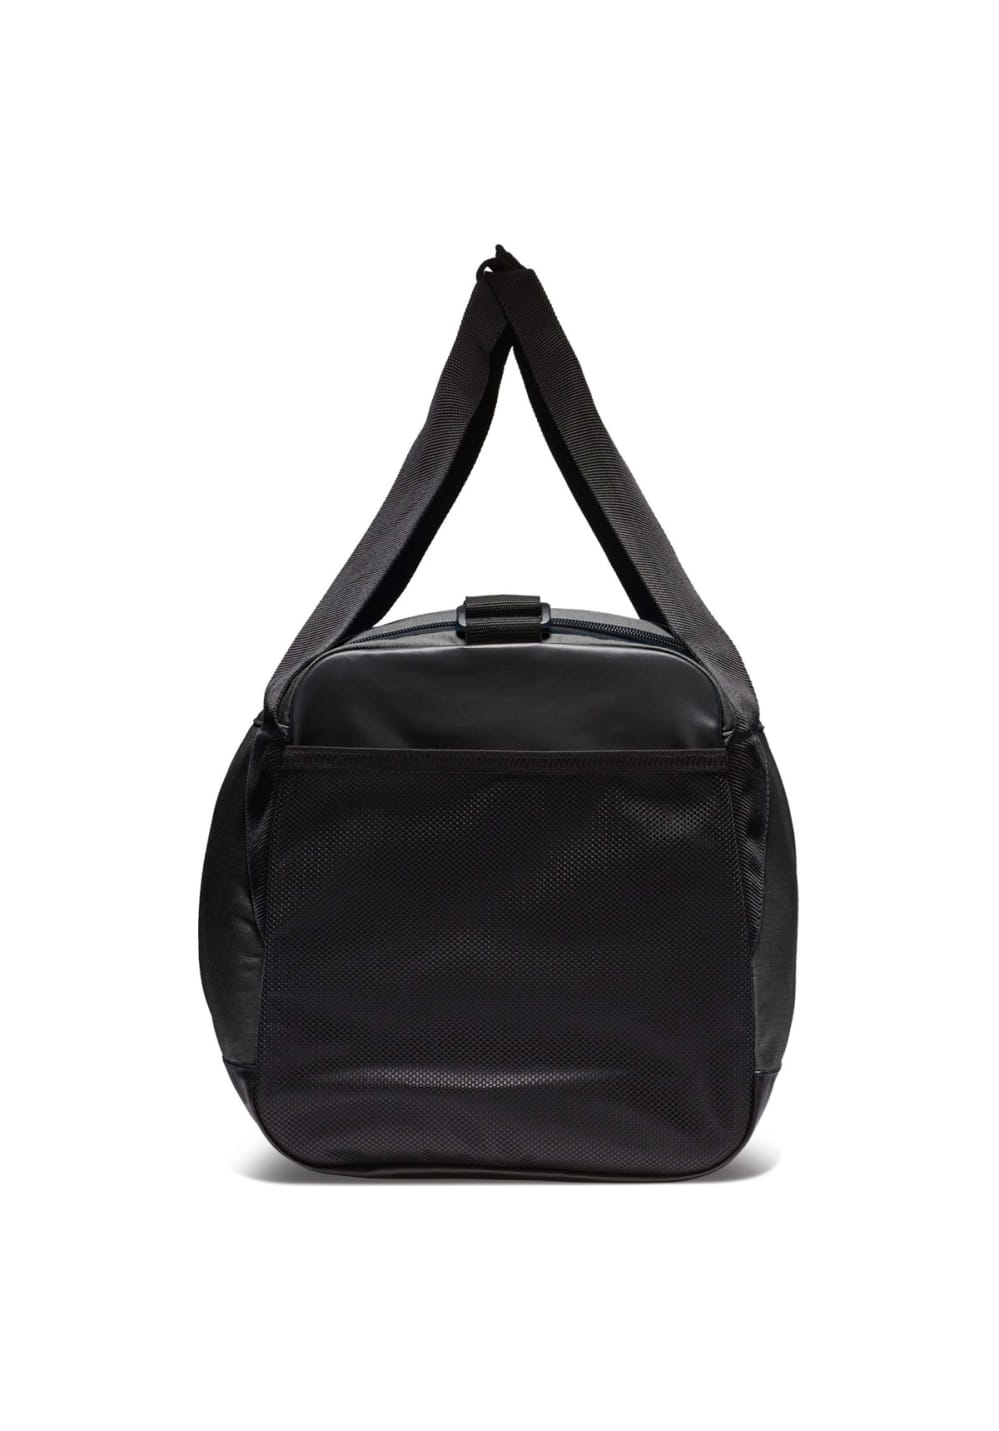 ... Nike Brasilia Small Training Duffel Bag - Sports bags for Men - Black.  Back to Overview. 1  2  3  4. Previous. Next dcd72b2dd11bf